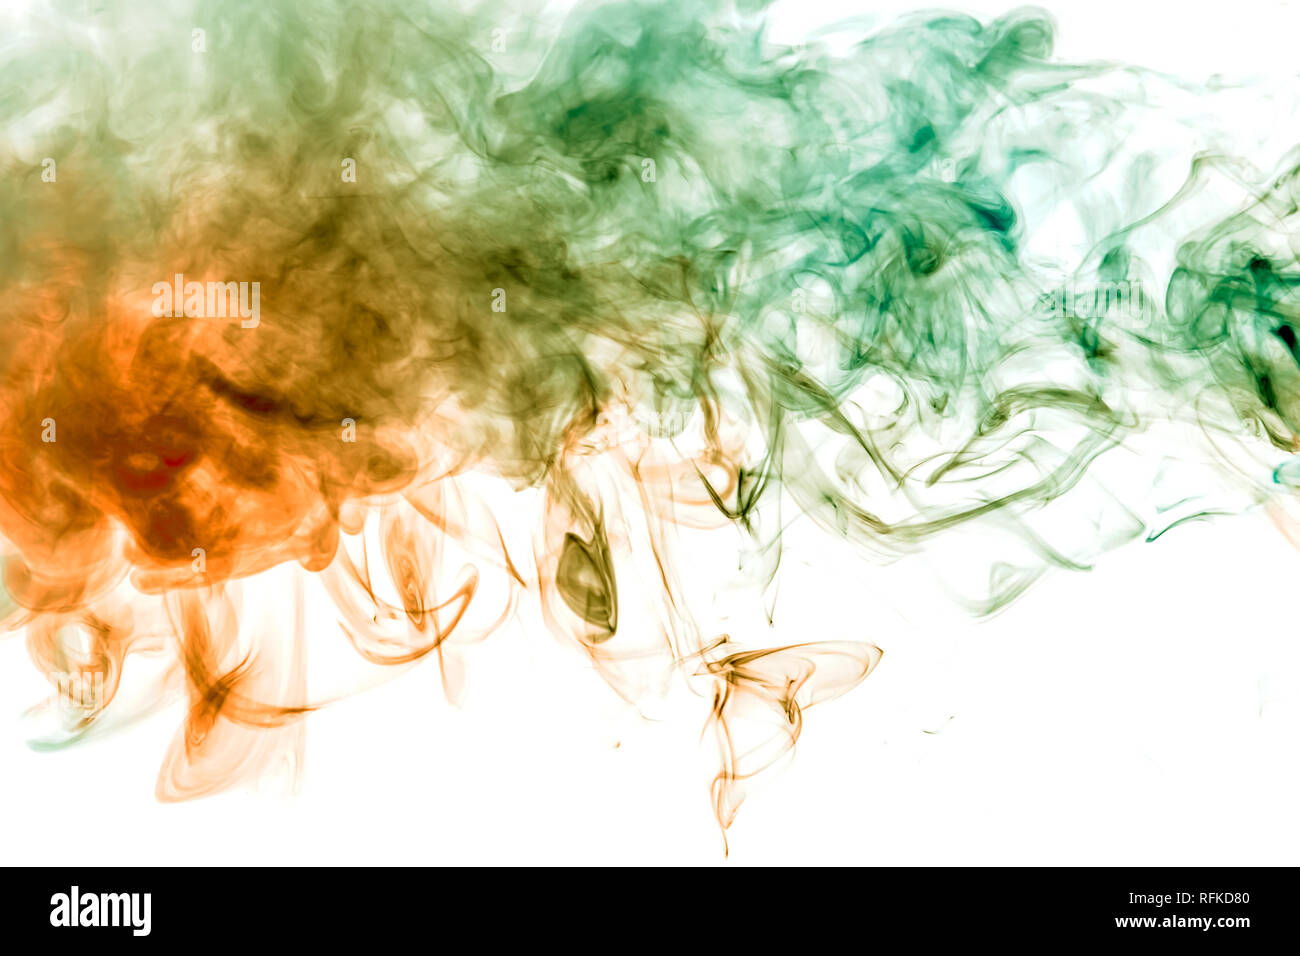 Thin smoothly curling streams of colored smoke dissolve on a white background like watercolor backlit with orange and green light. - Stock Image